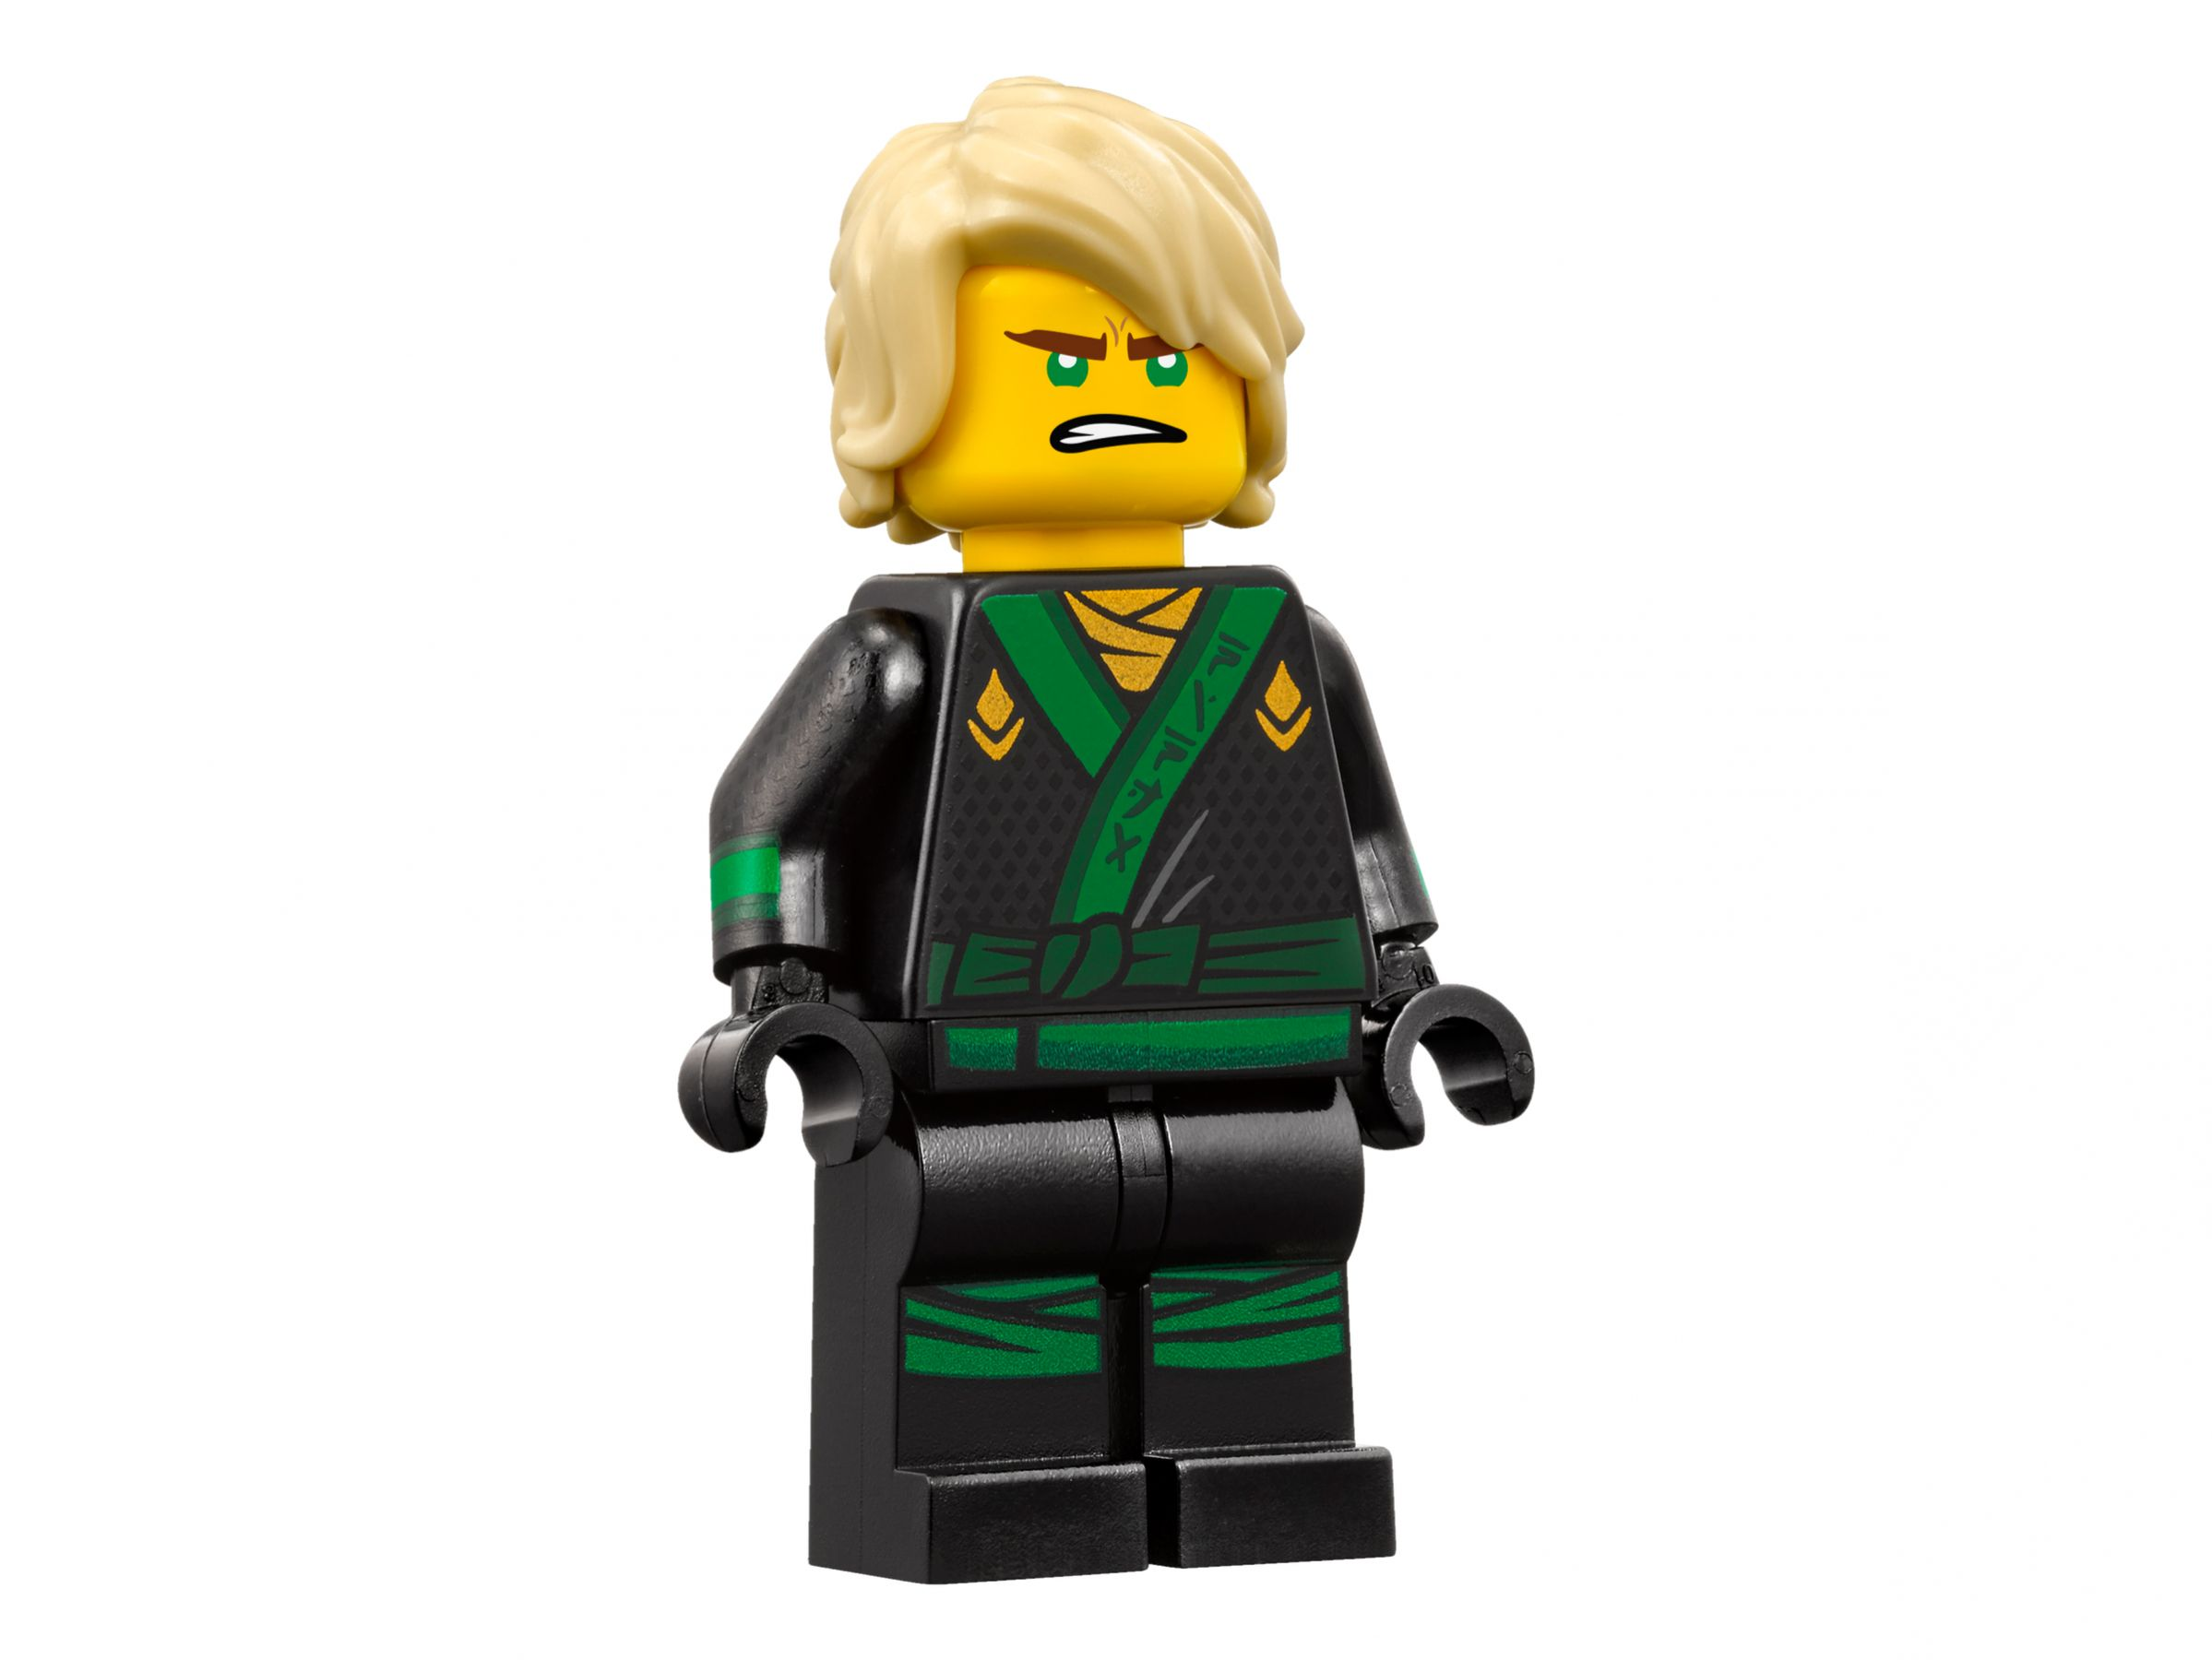 LEGO The LEGO Ninjago Movie 70617 Ultimativ ultimatives Tempel-Versteck LEGO_70617_alt14.jpg